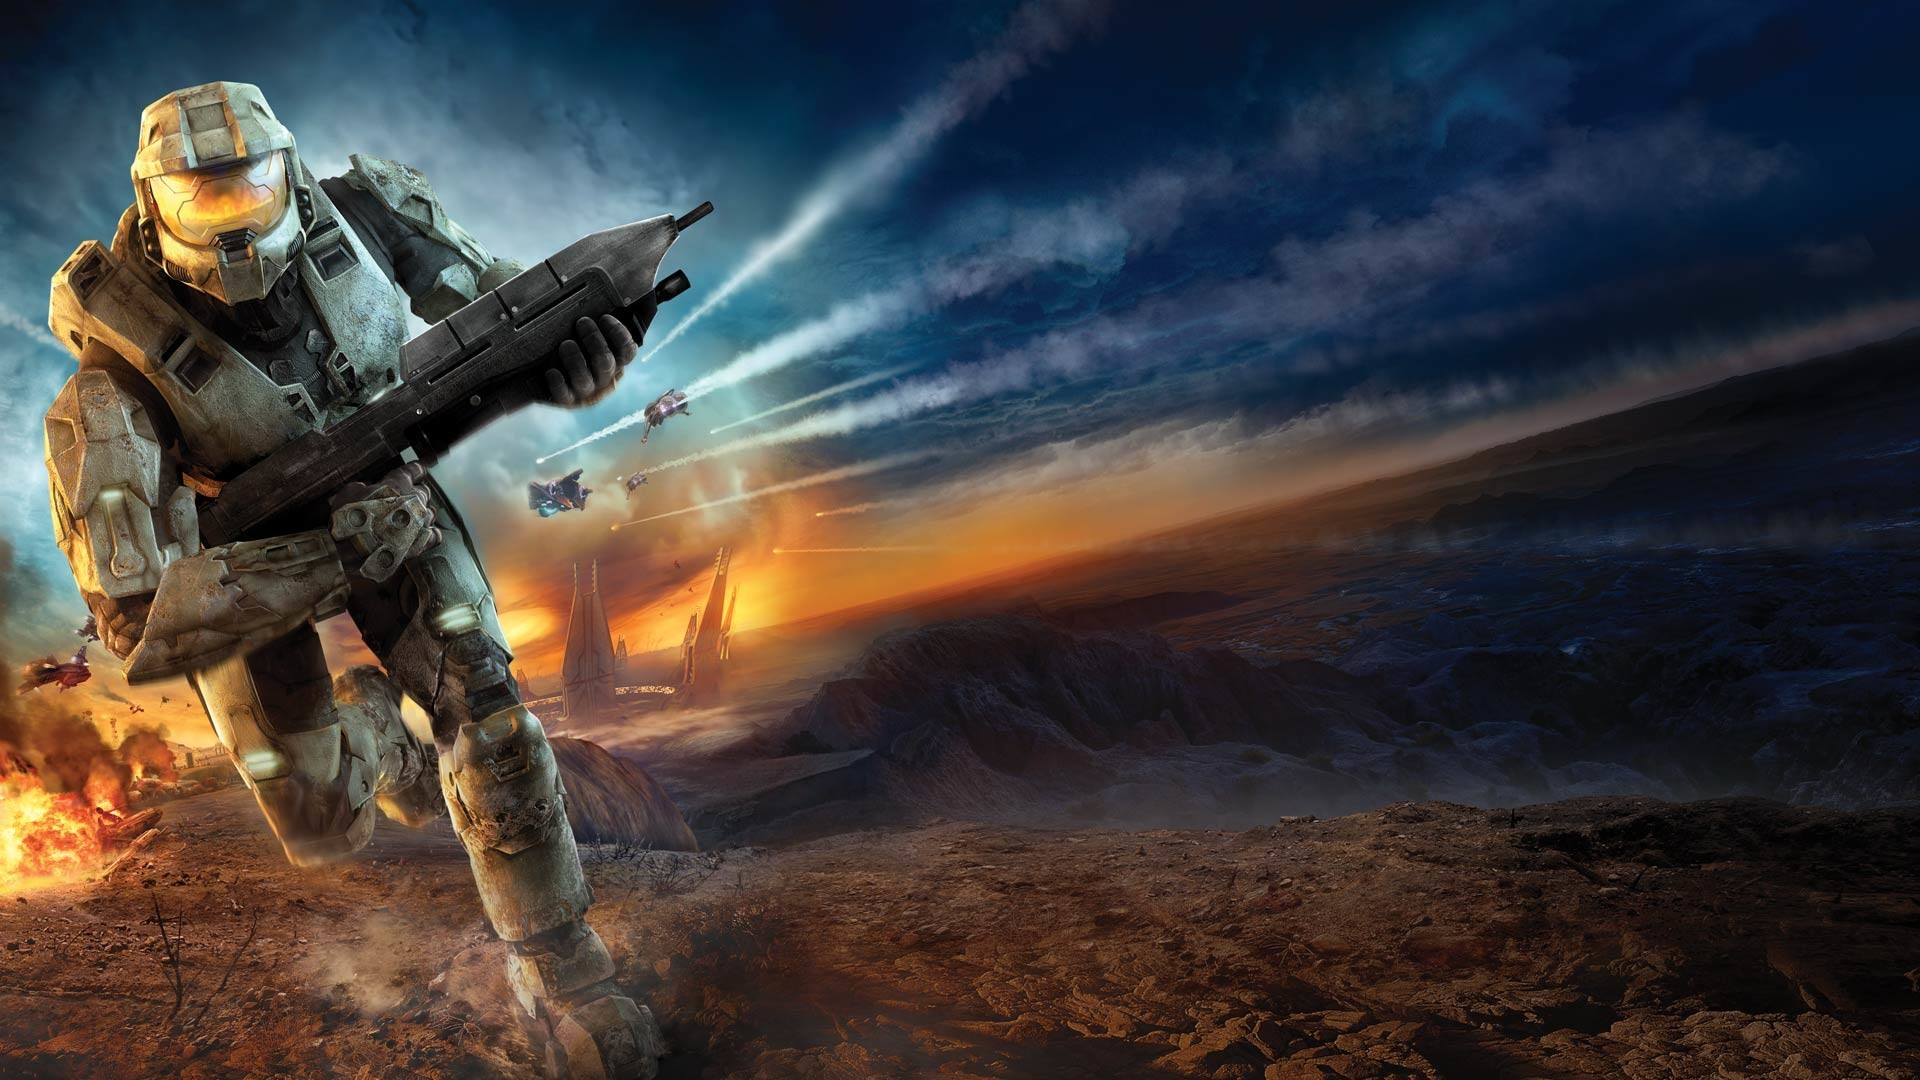 Res: 1920x1080,  Full HD p Halo Wallpapers HD, Desktop Backgrounds 1920×1080 Halo  Wallpapers (